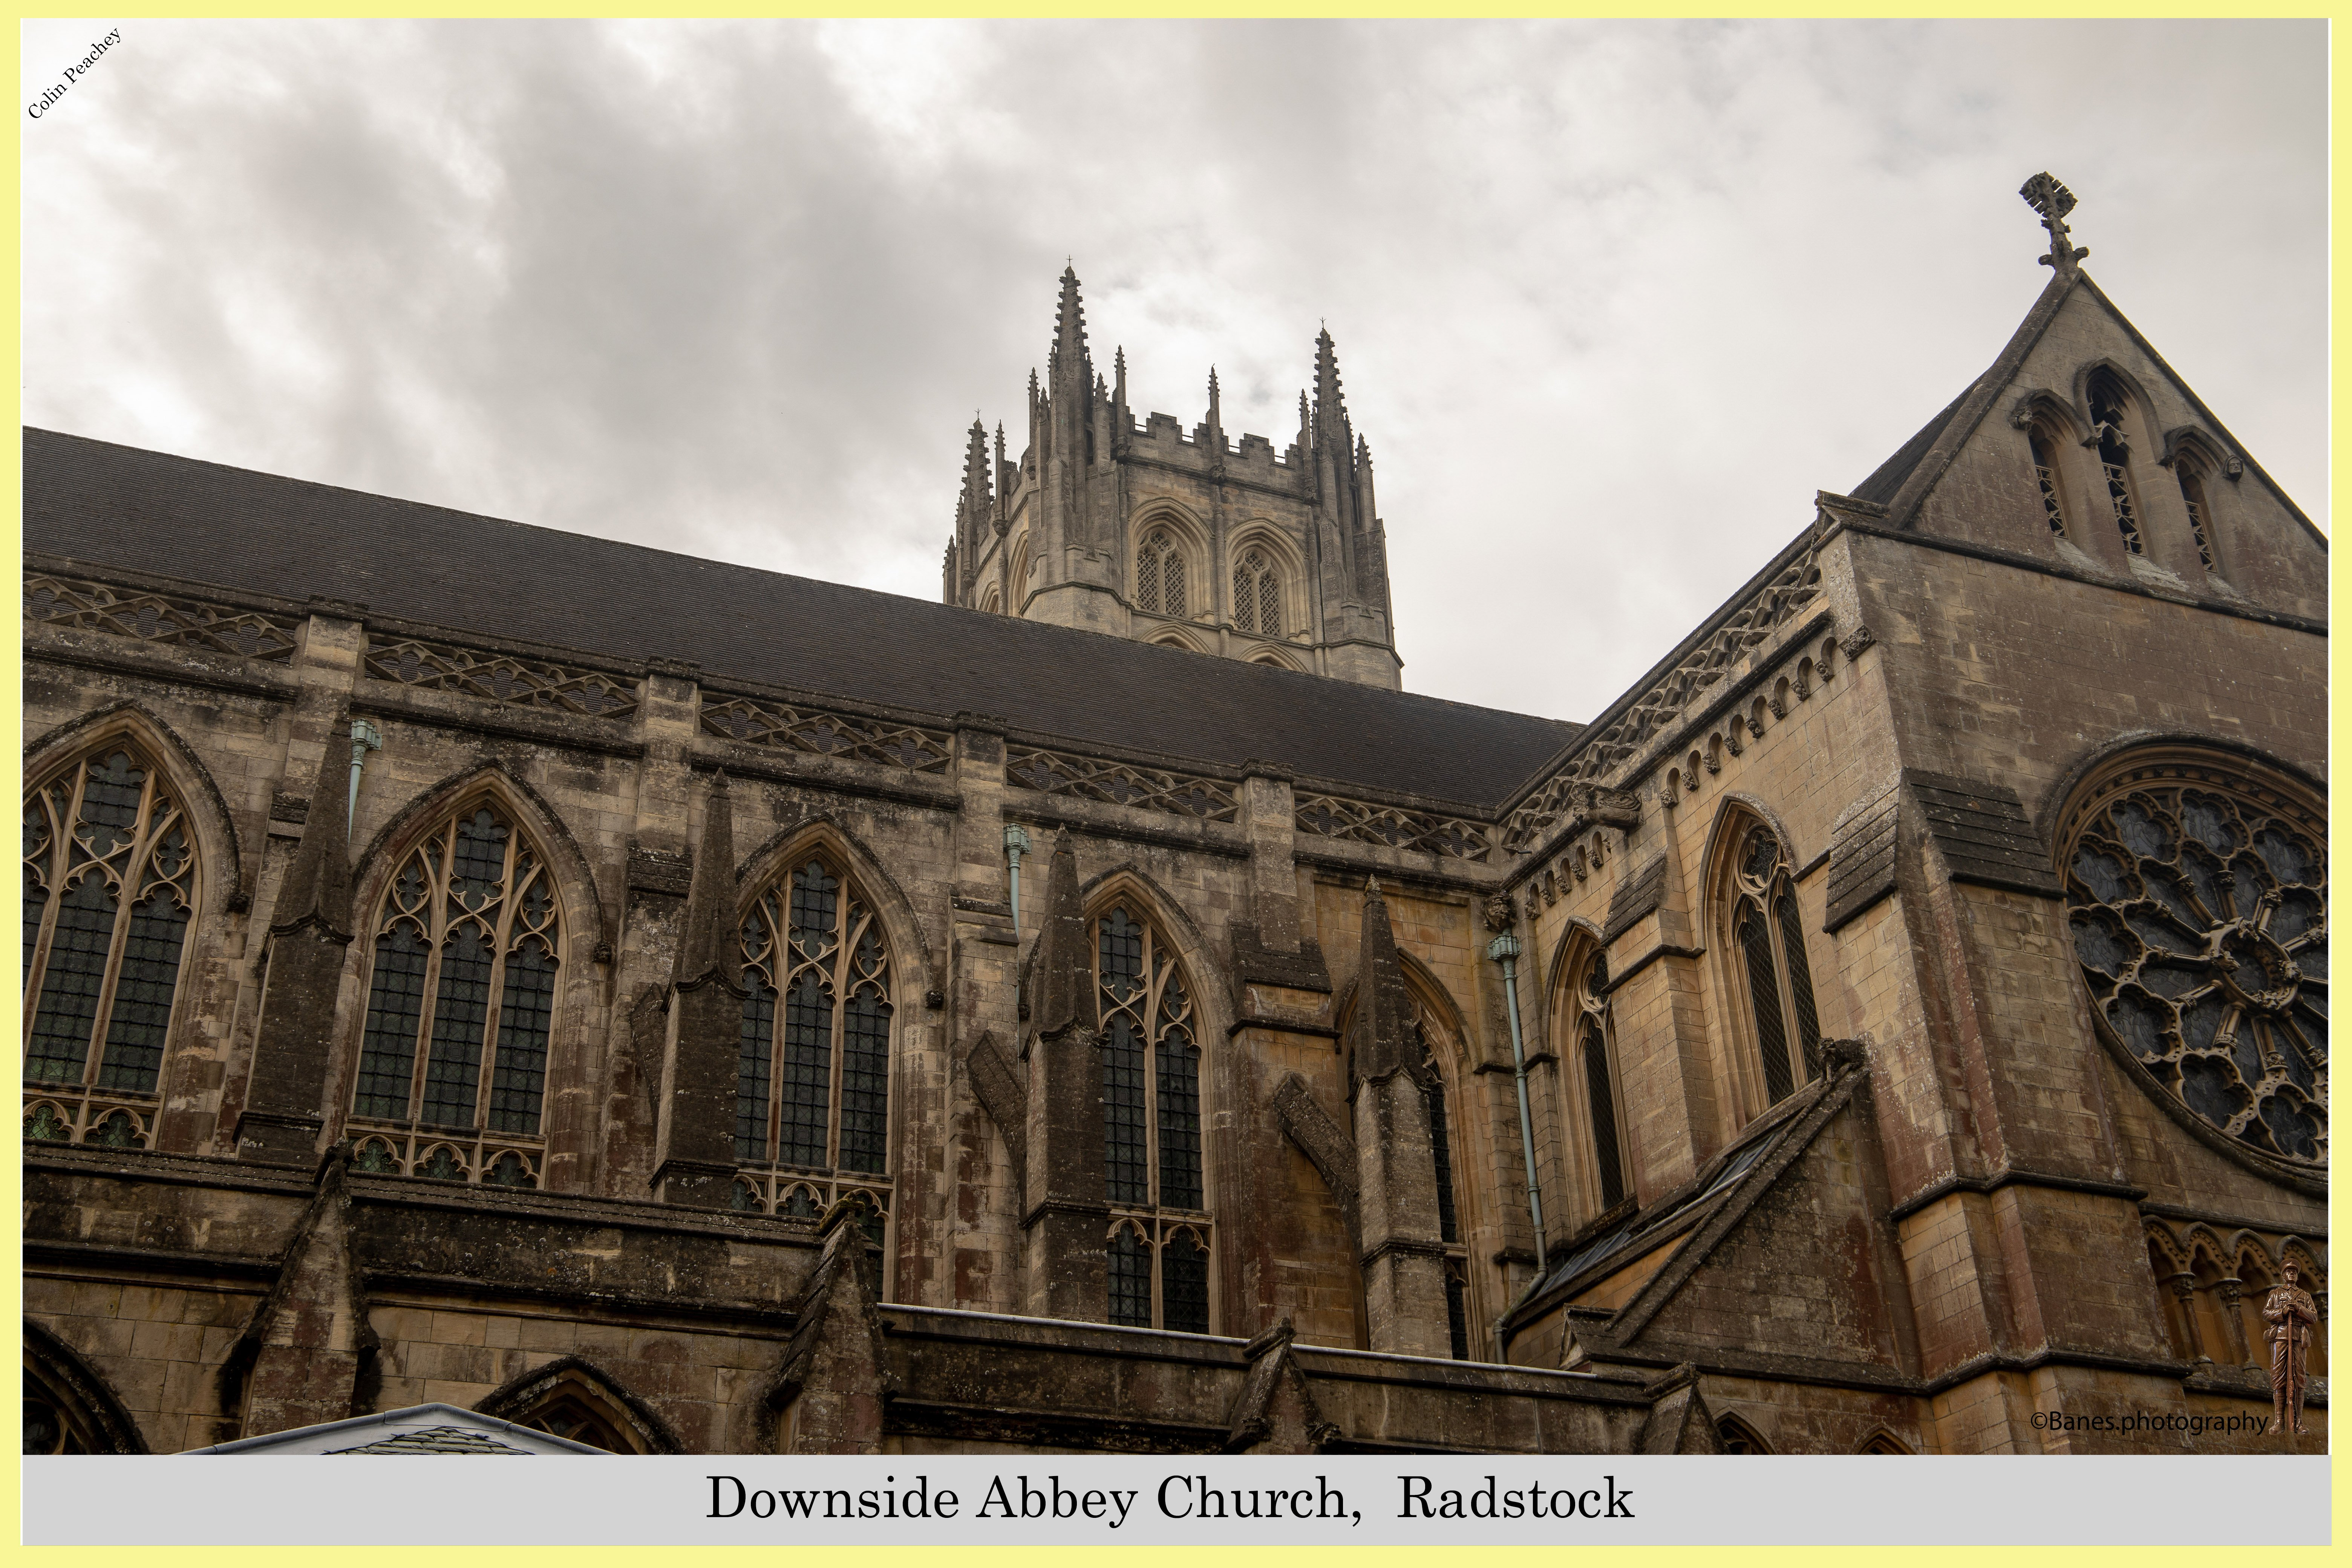 Exterior view of Downside Abbey Church,  Radstock, UK